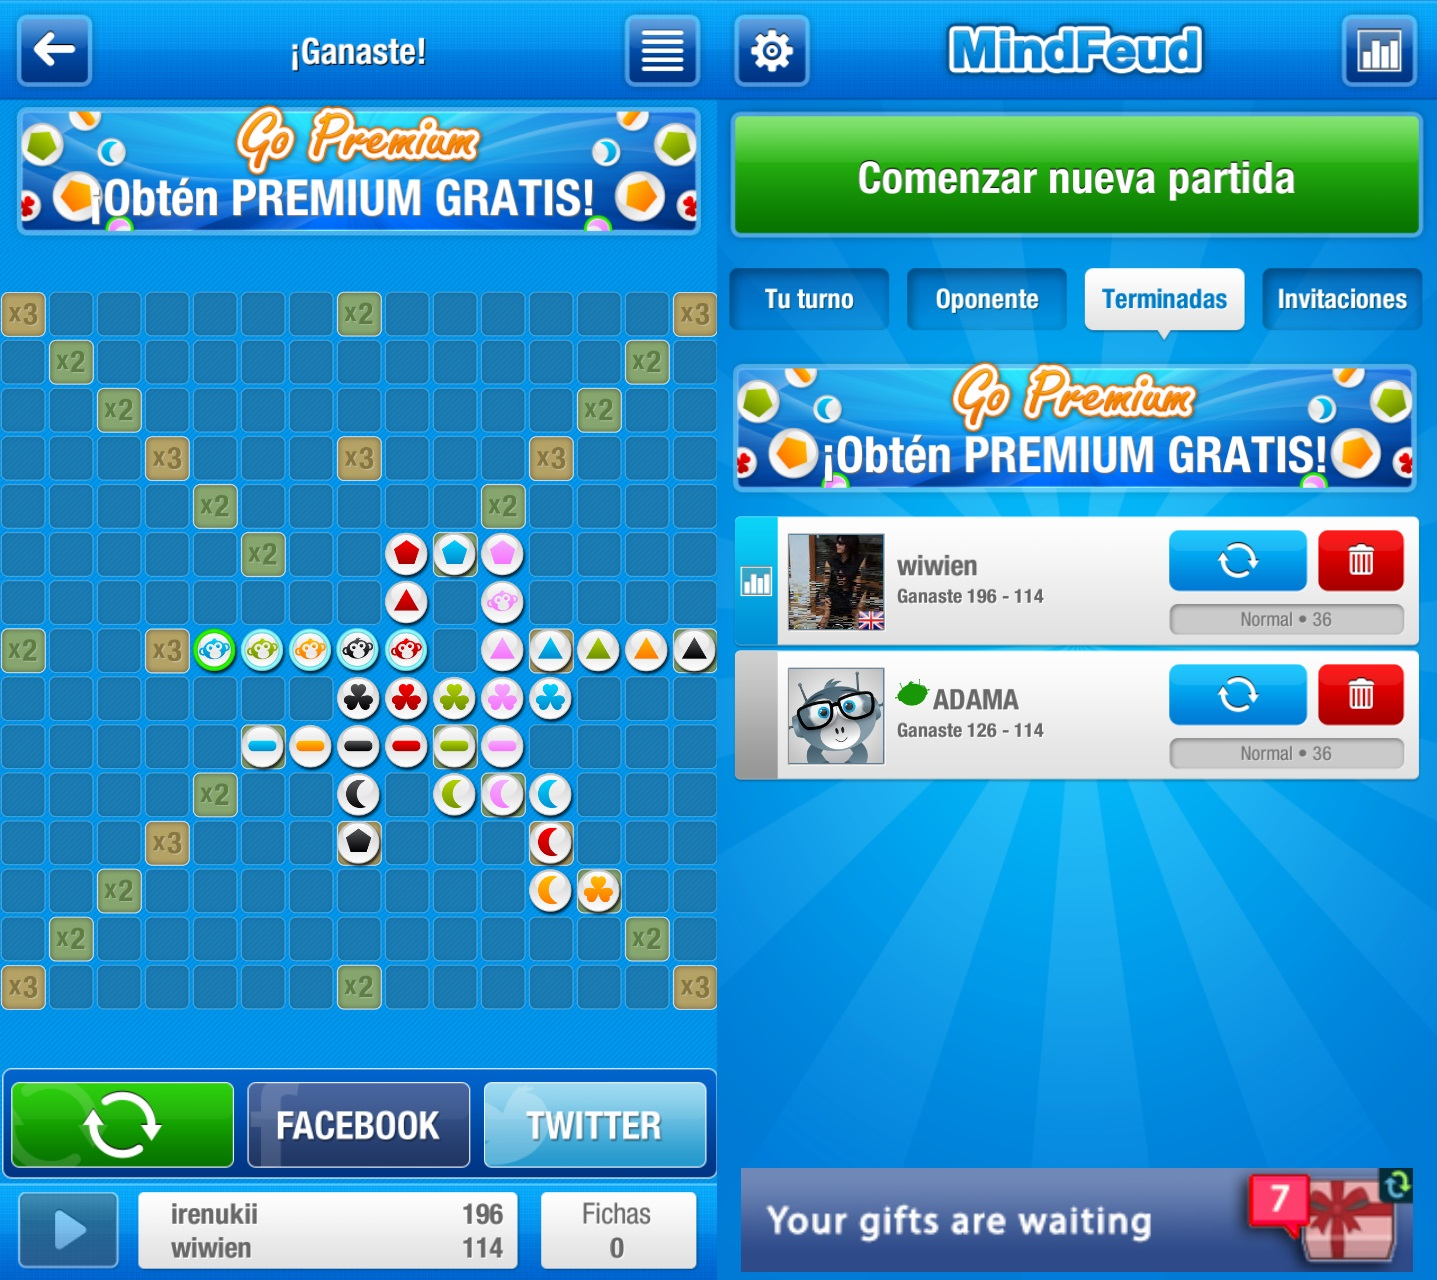 mind feud para android